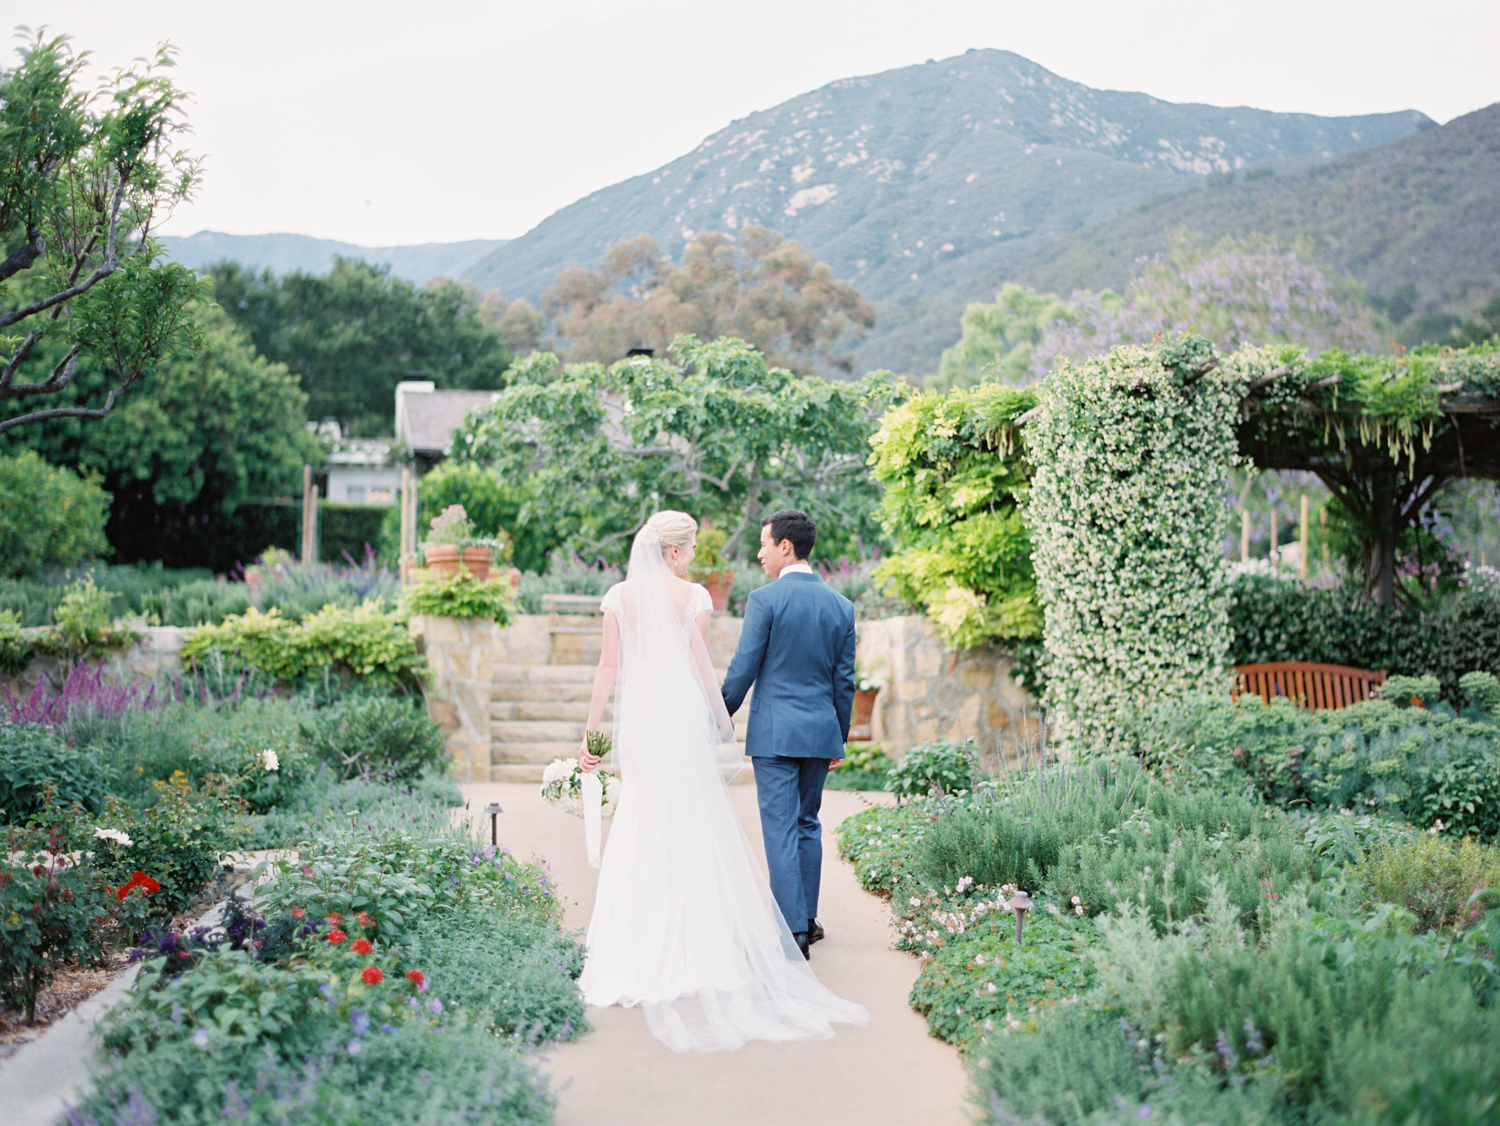 21 San Ysidro Ranch Wedding Planned Joy Proctor.JPG